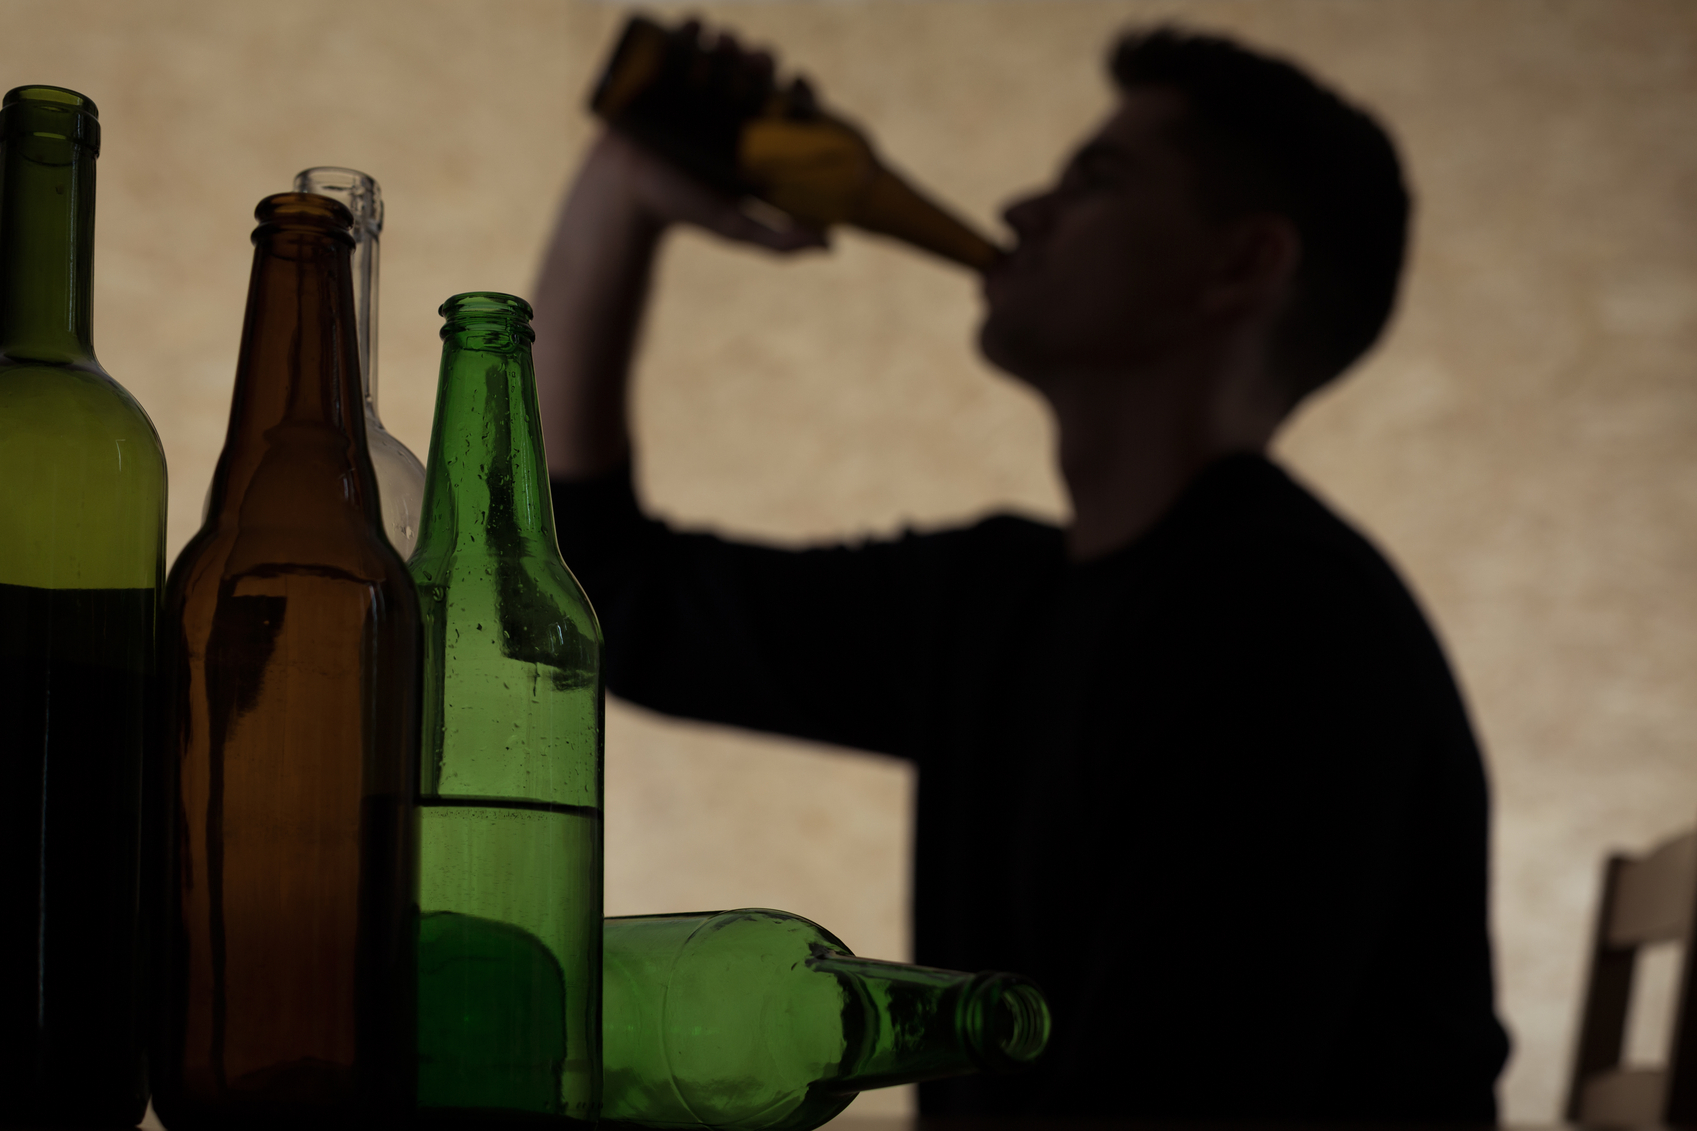 In the category for alcohol consumption, Denmark scored 39 out of 100 (photo: iStock)